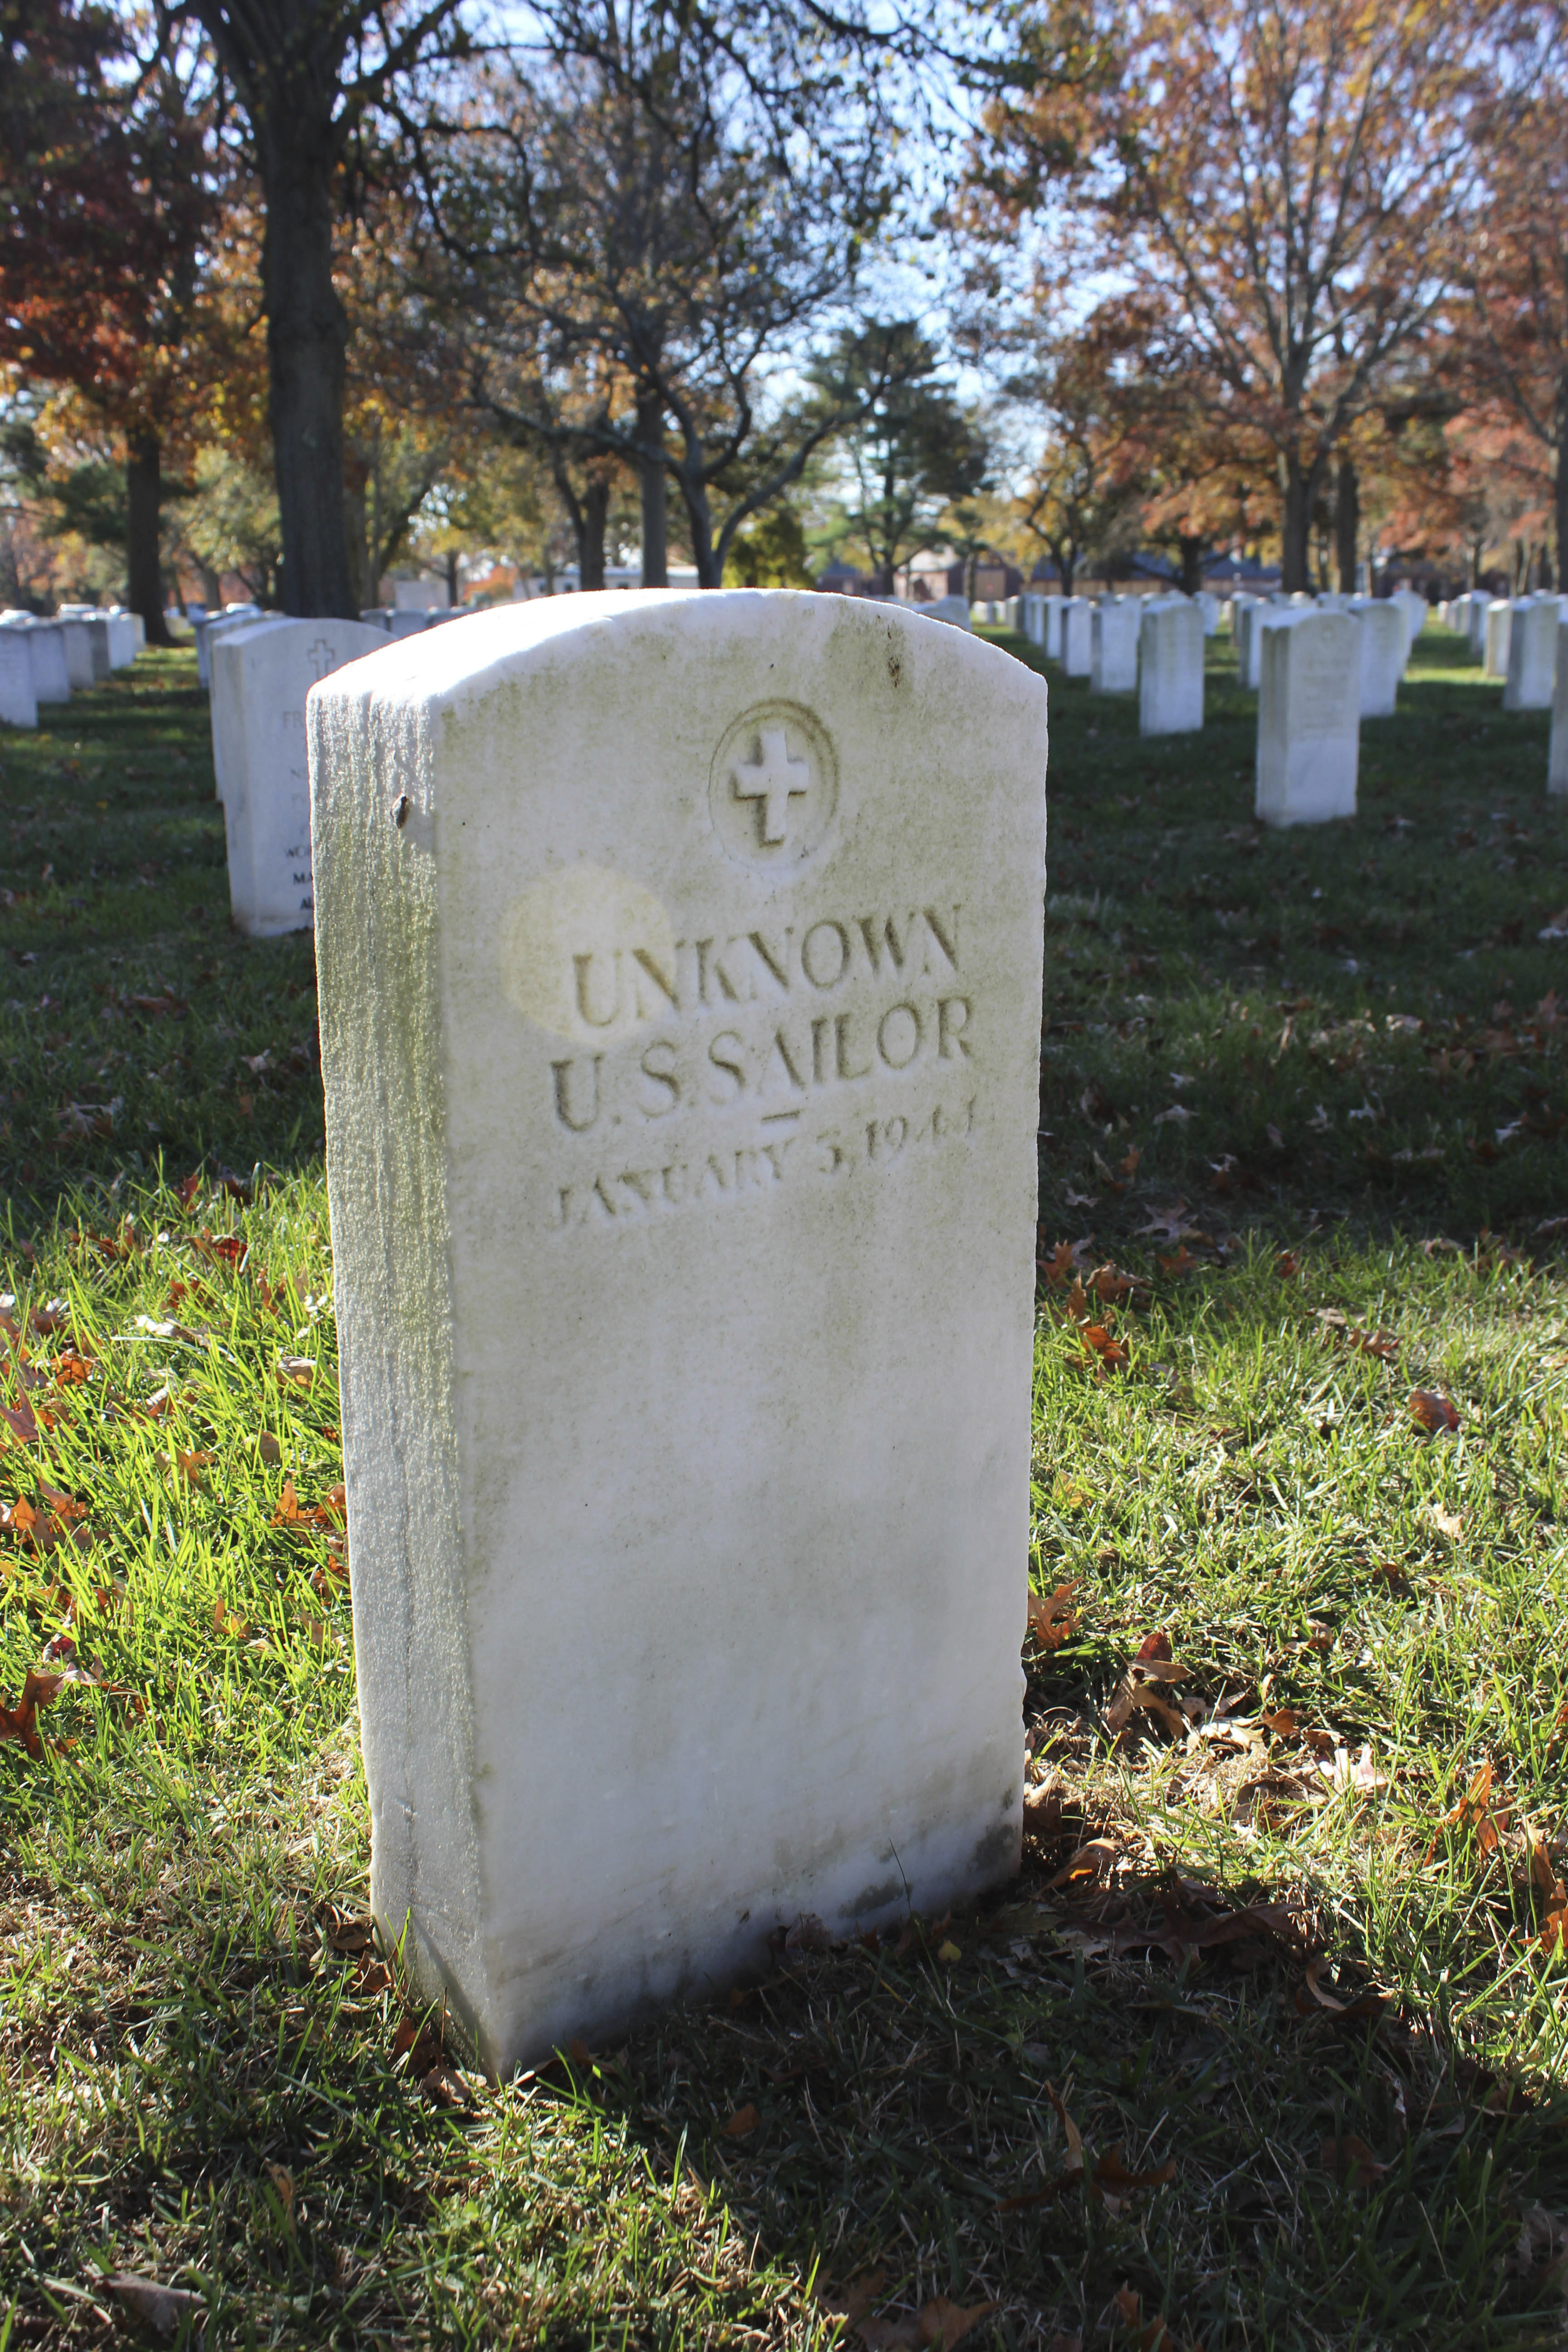 A gravestone with the inscription UNKNOWN U.S. SAILOR at Long Island National Cemetery in Farmingdale, N.Y. (AP Photo/Frank Eltman, File)